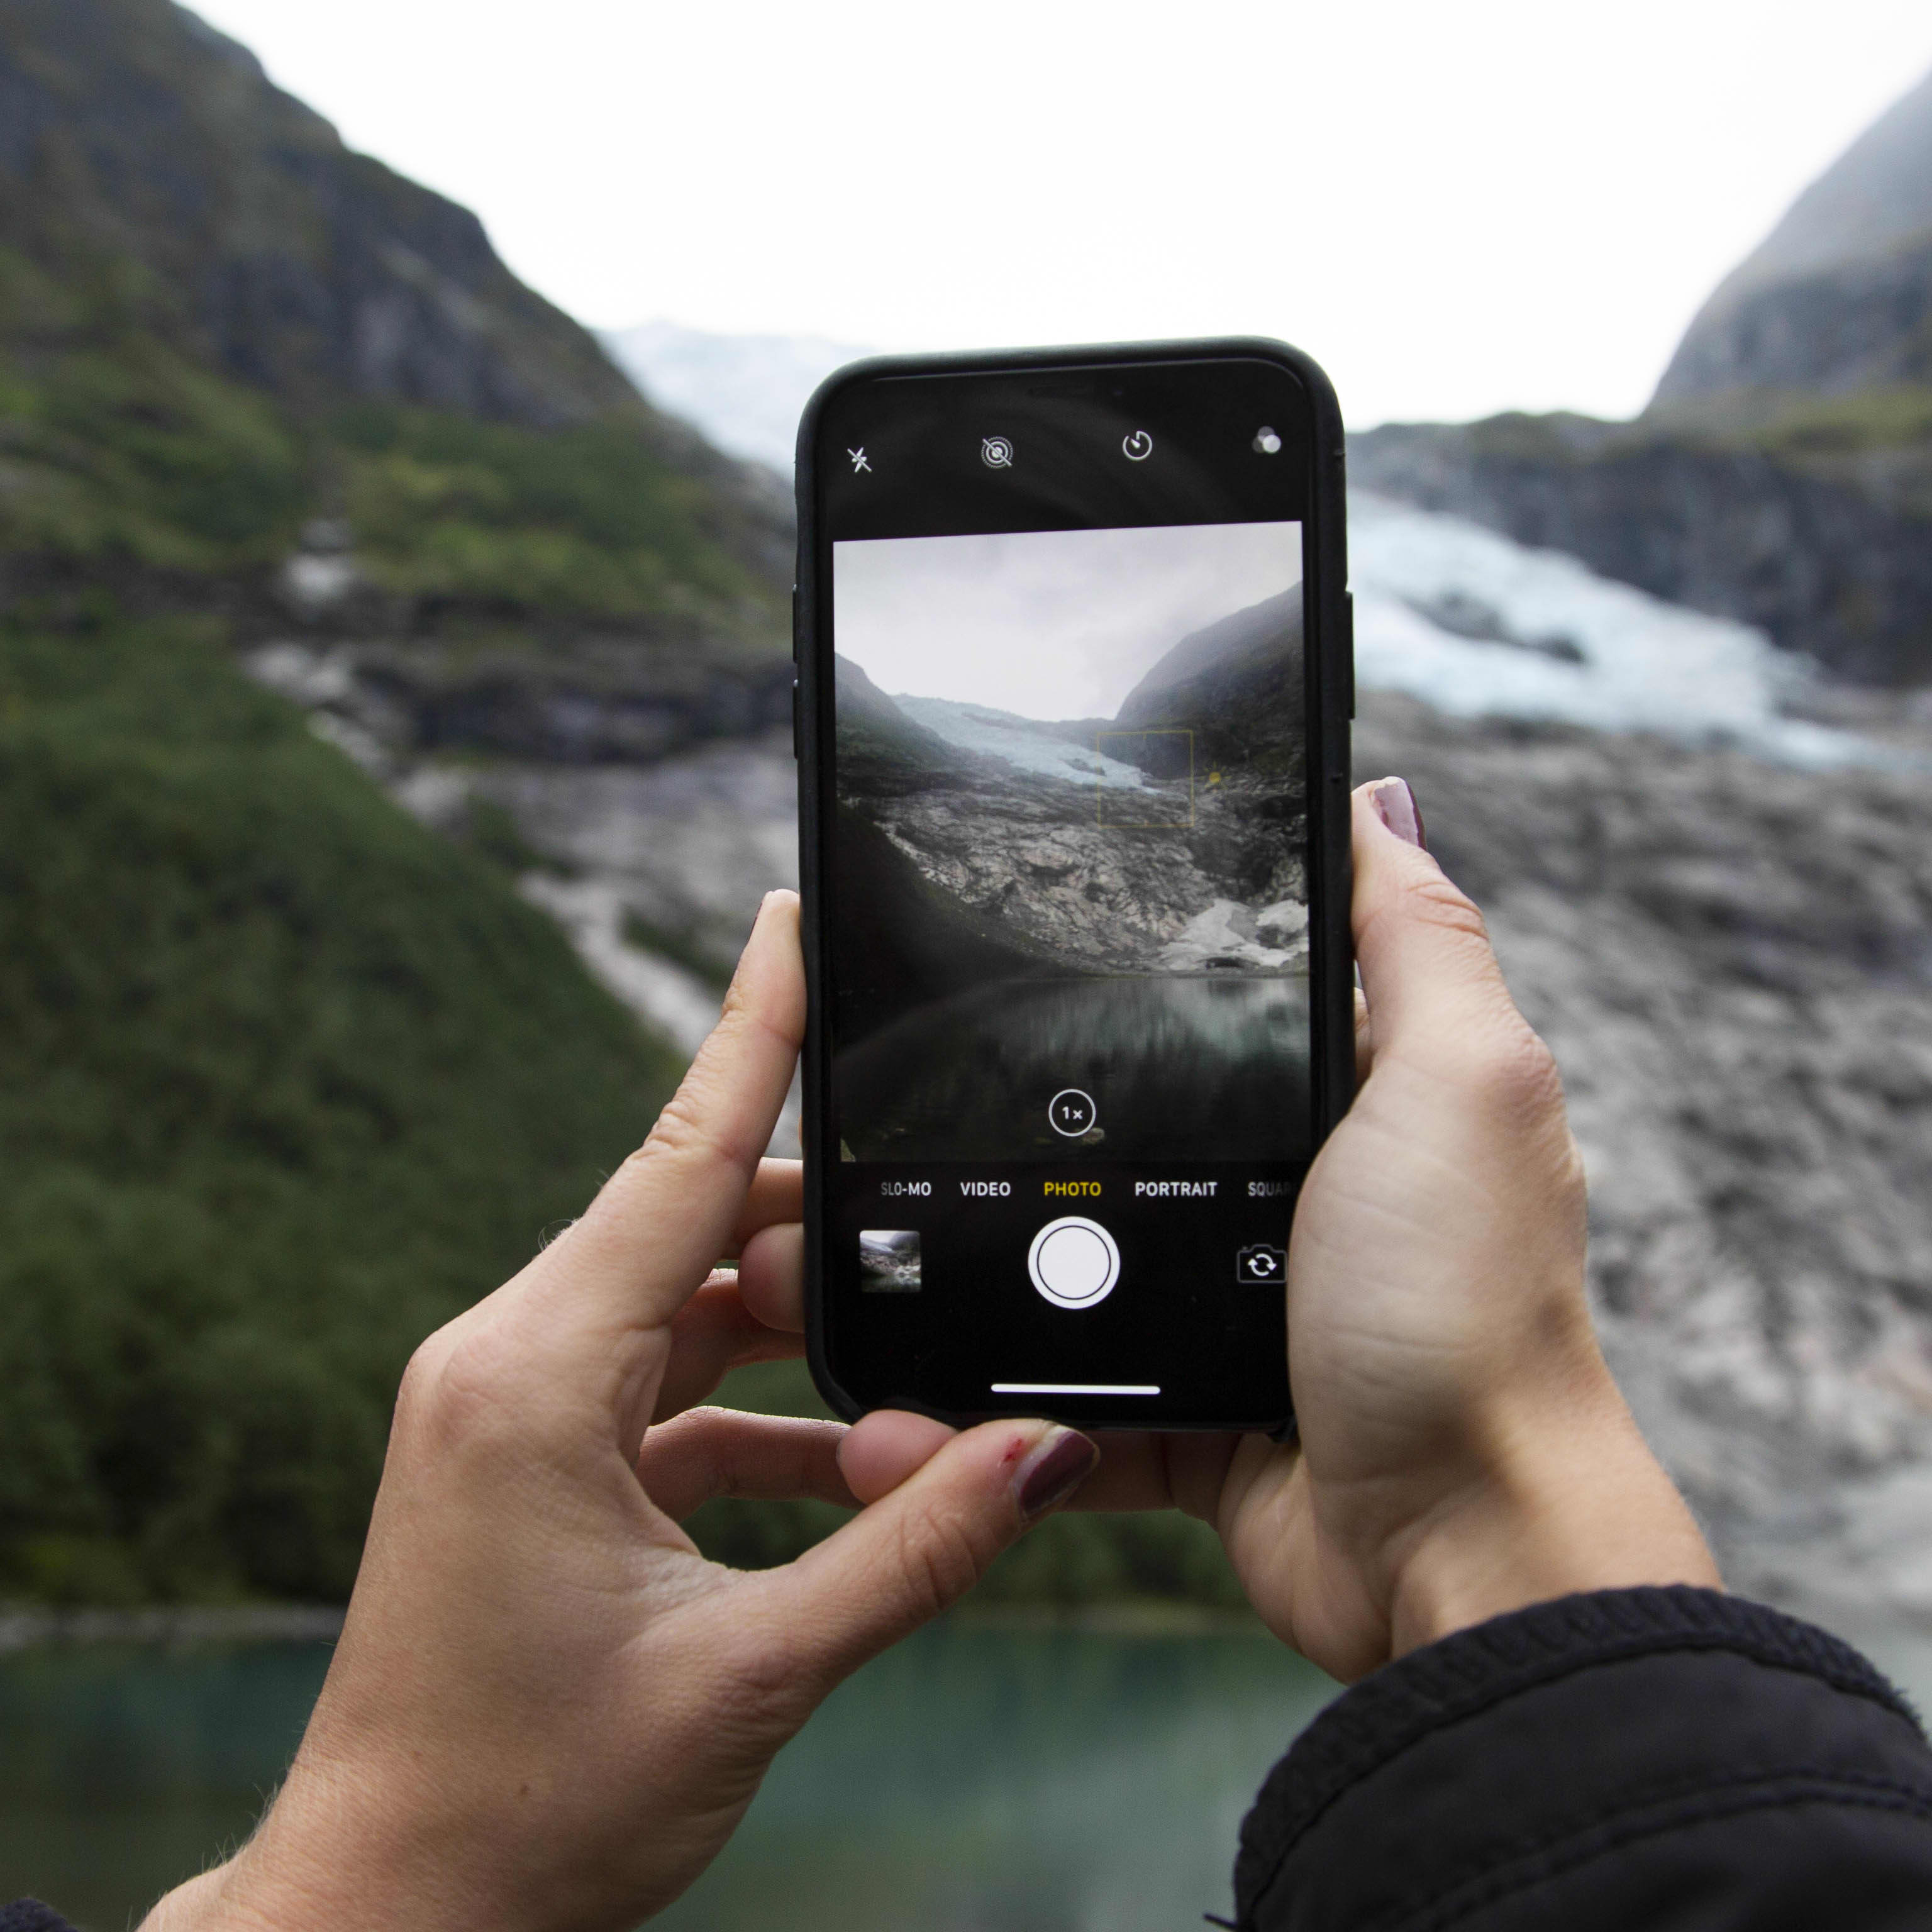 A picture of a black iPhone taking a picture of the small blue arm of Jostedalsbreen named Bøyabreen.